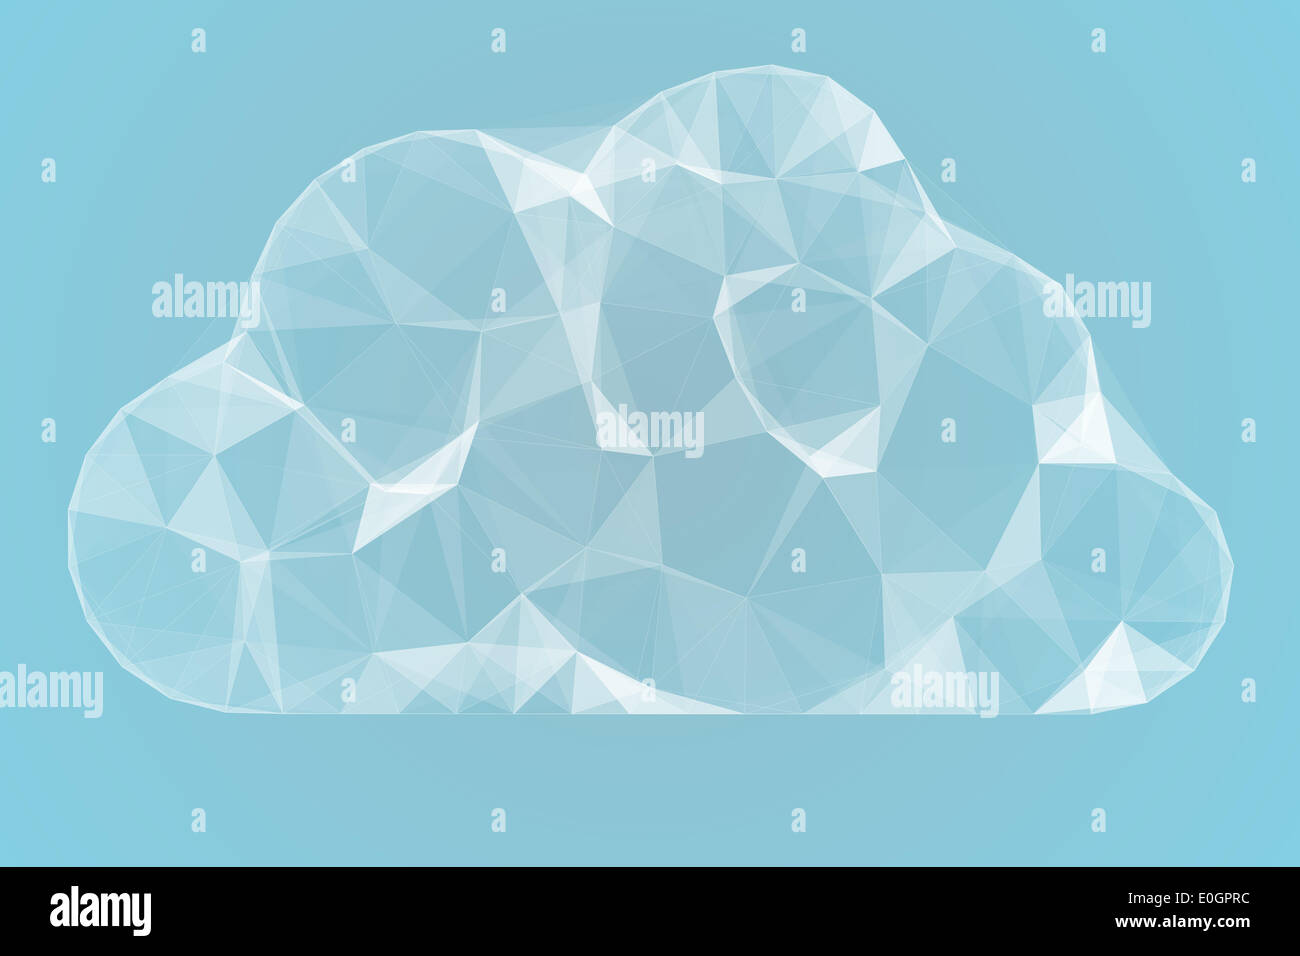 Angular cloud design in white - Stock Image